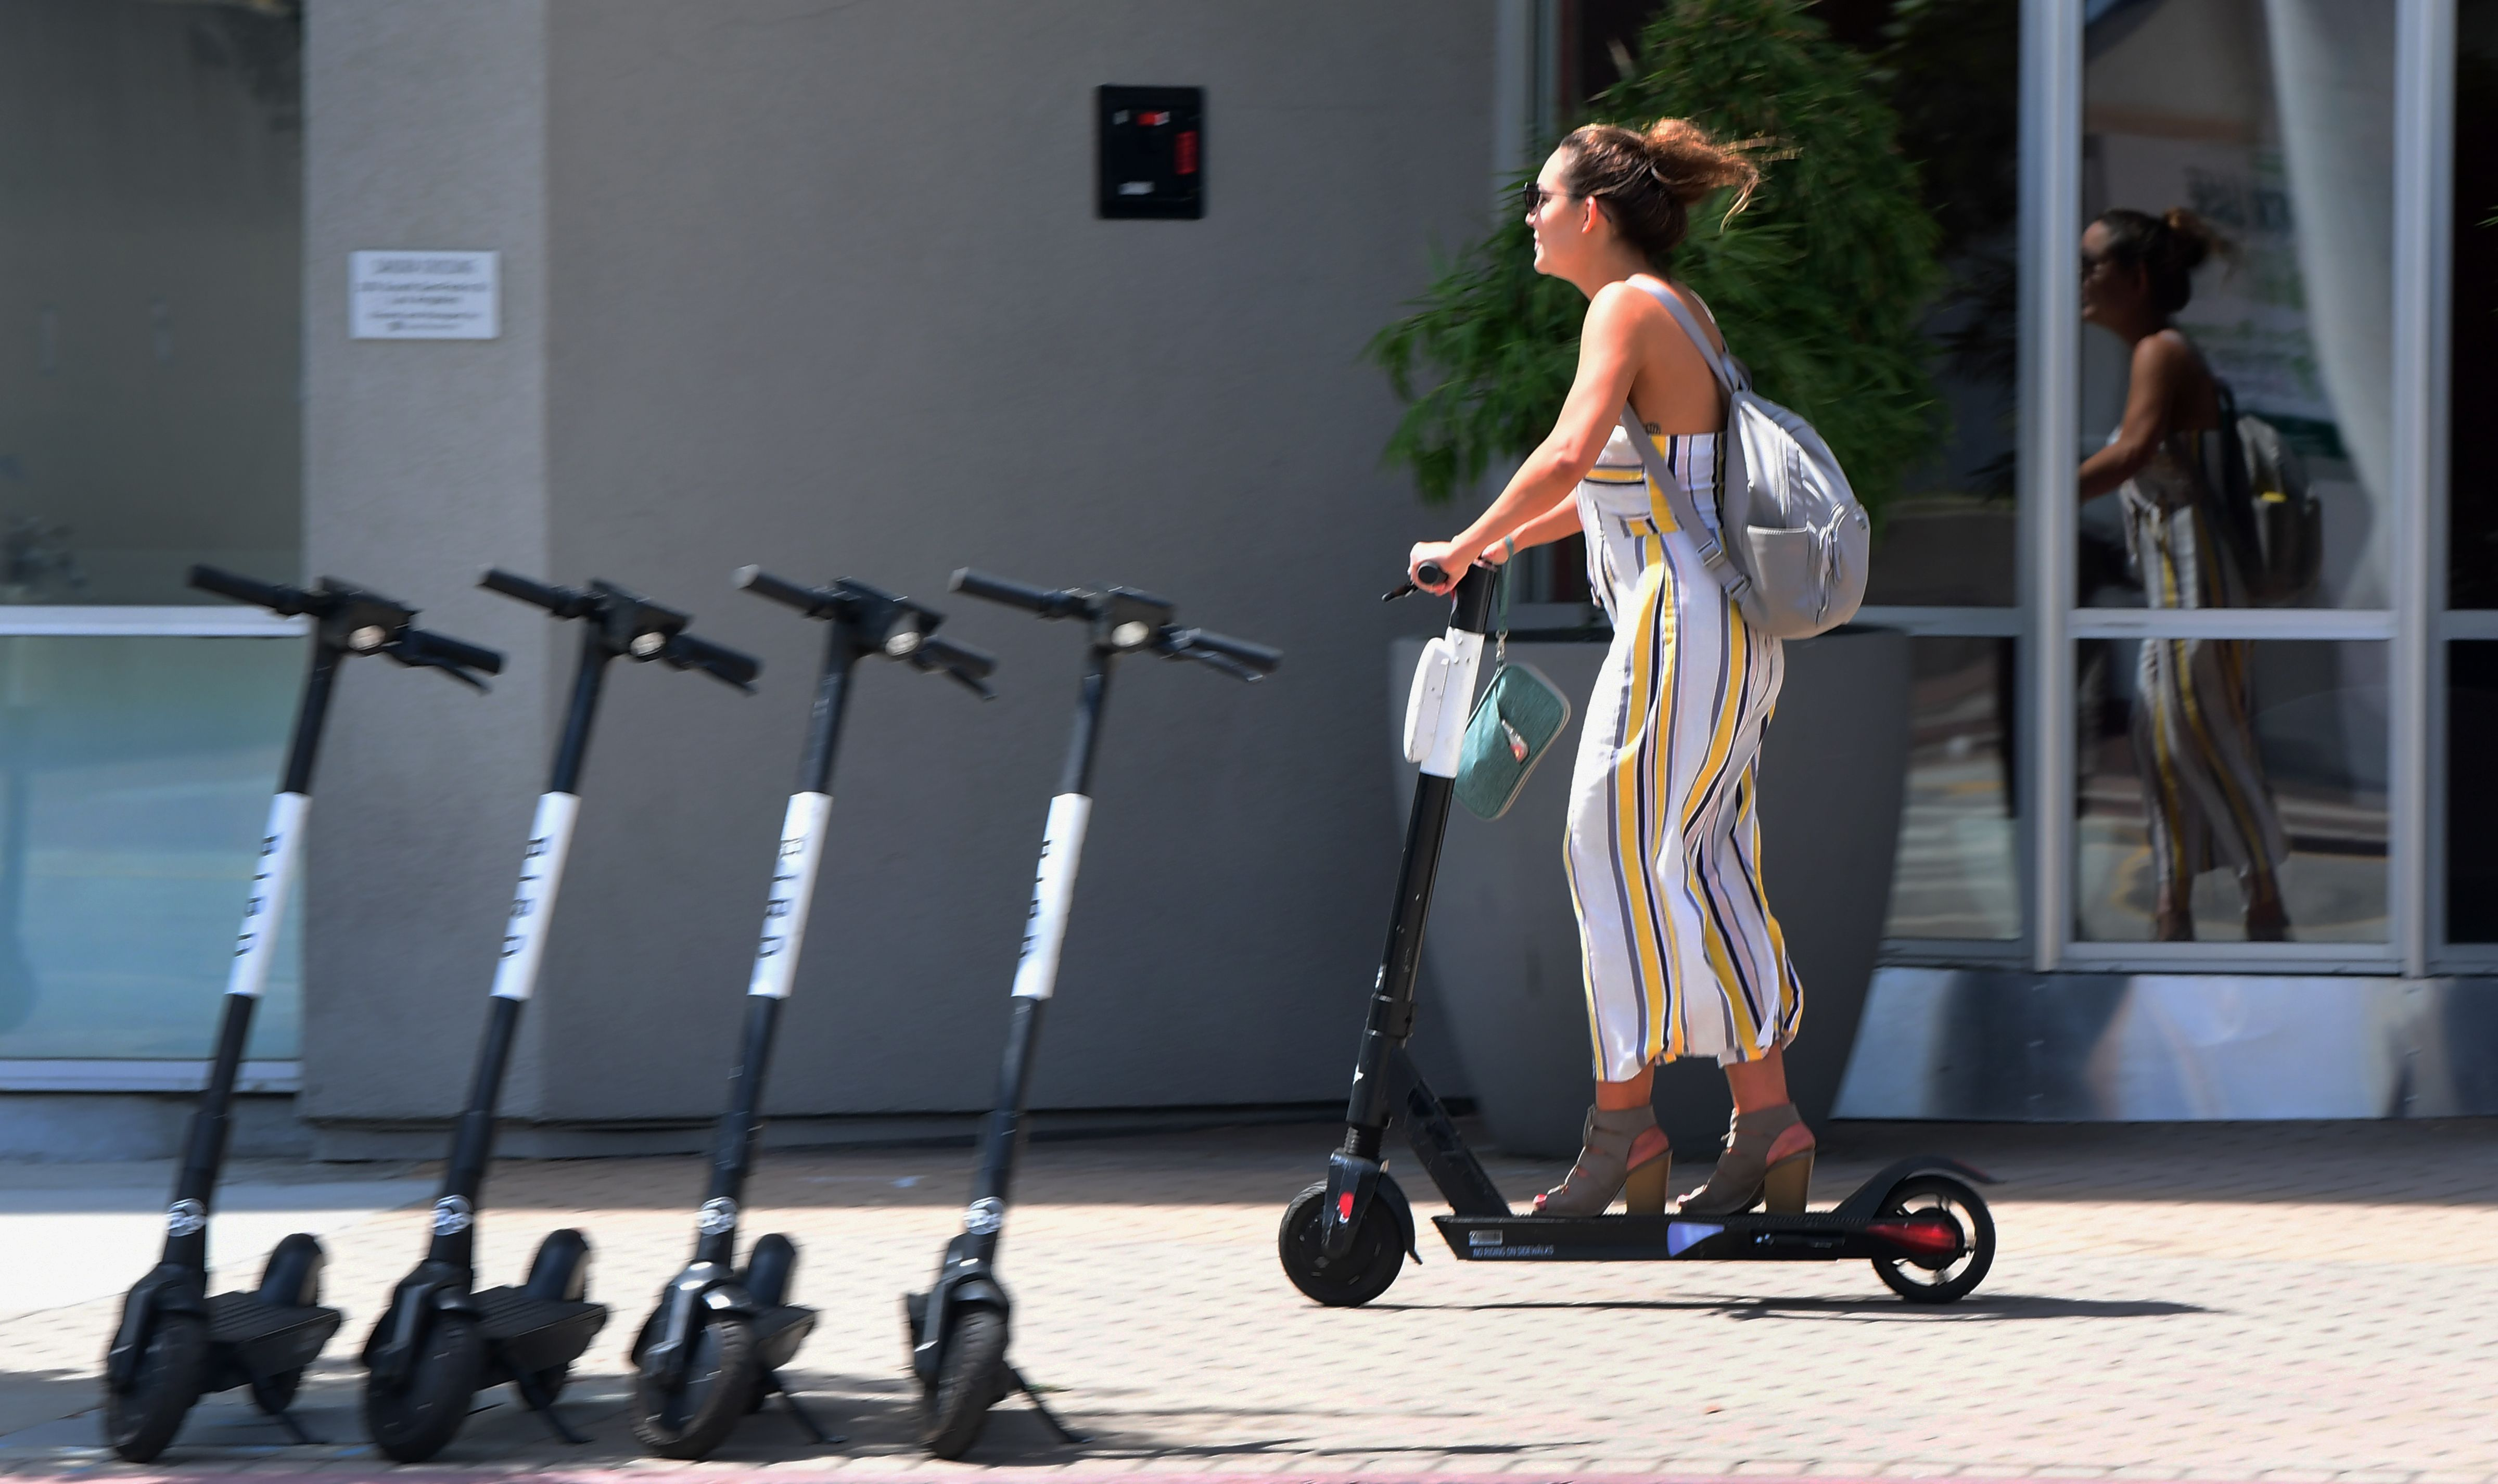 A woman in a white and yellow striped jumpsuit and  a gray backpack rides a black and white electric scooter on a sidewalk past a gray building. Four scooters are parked on the street in front of her.